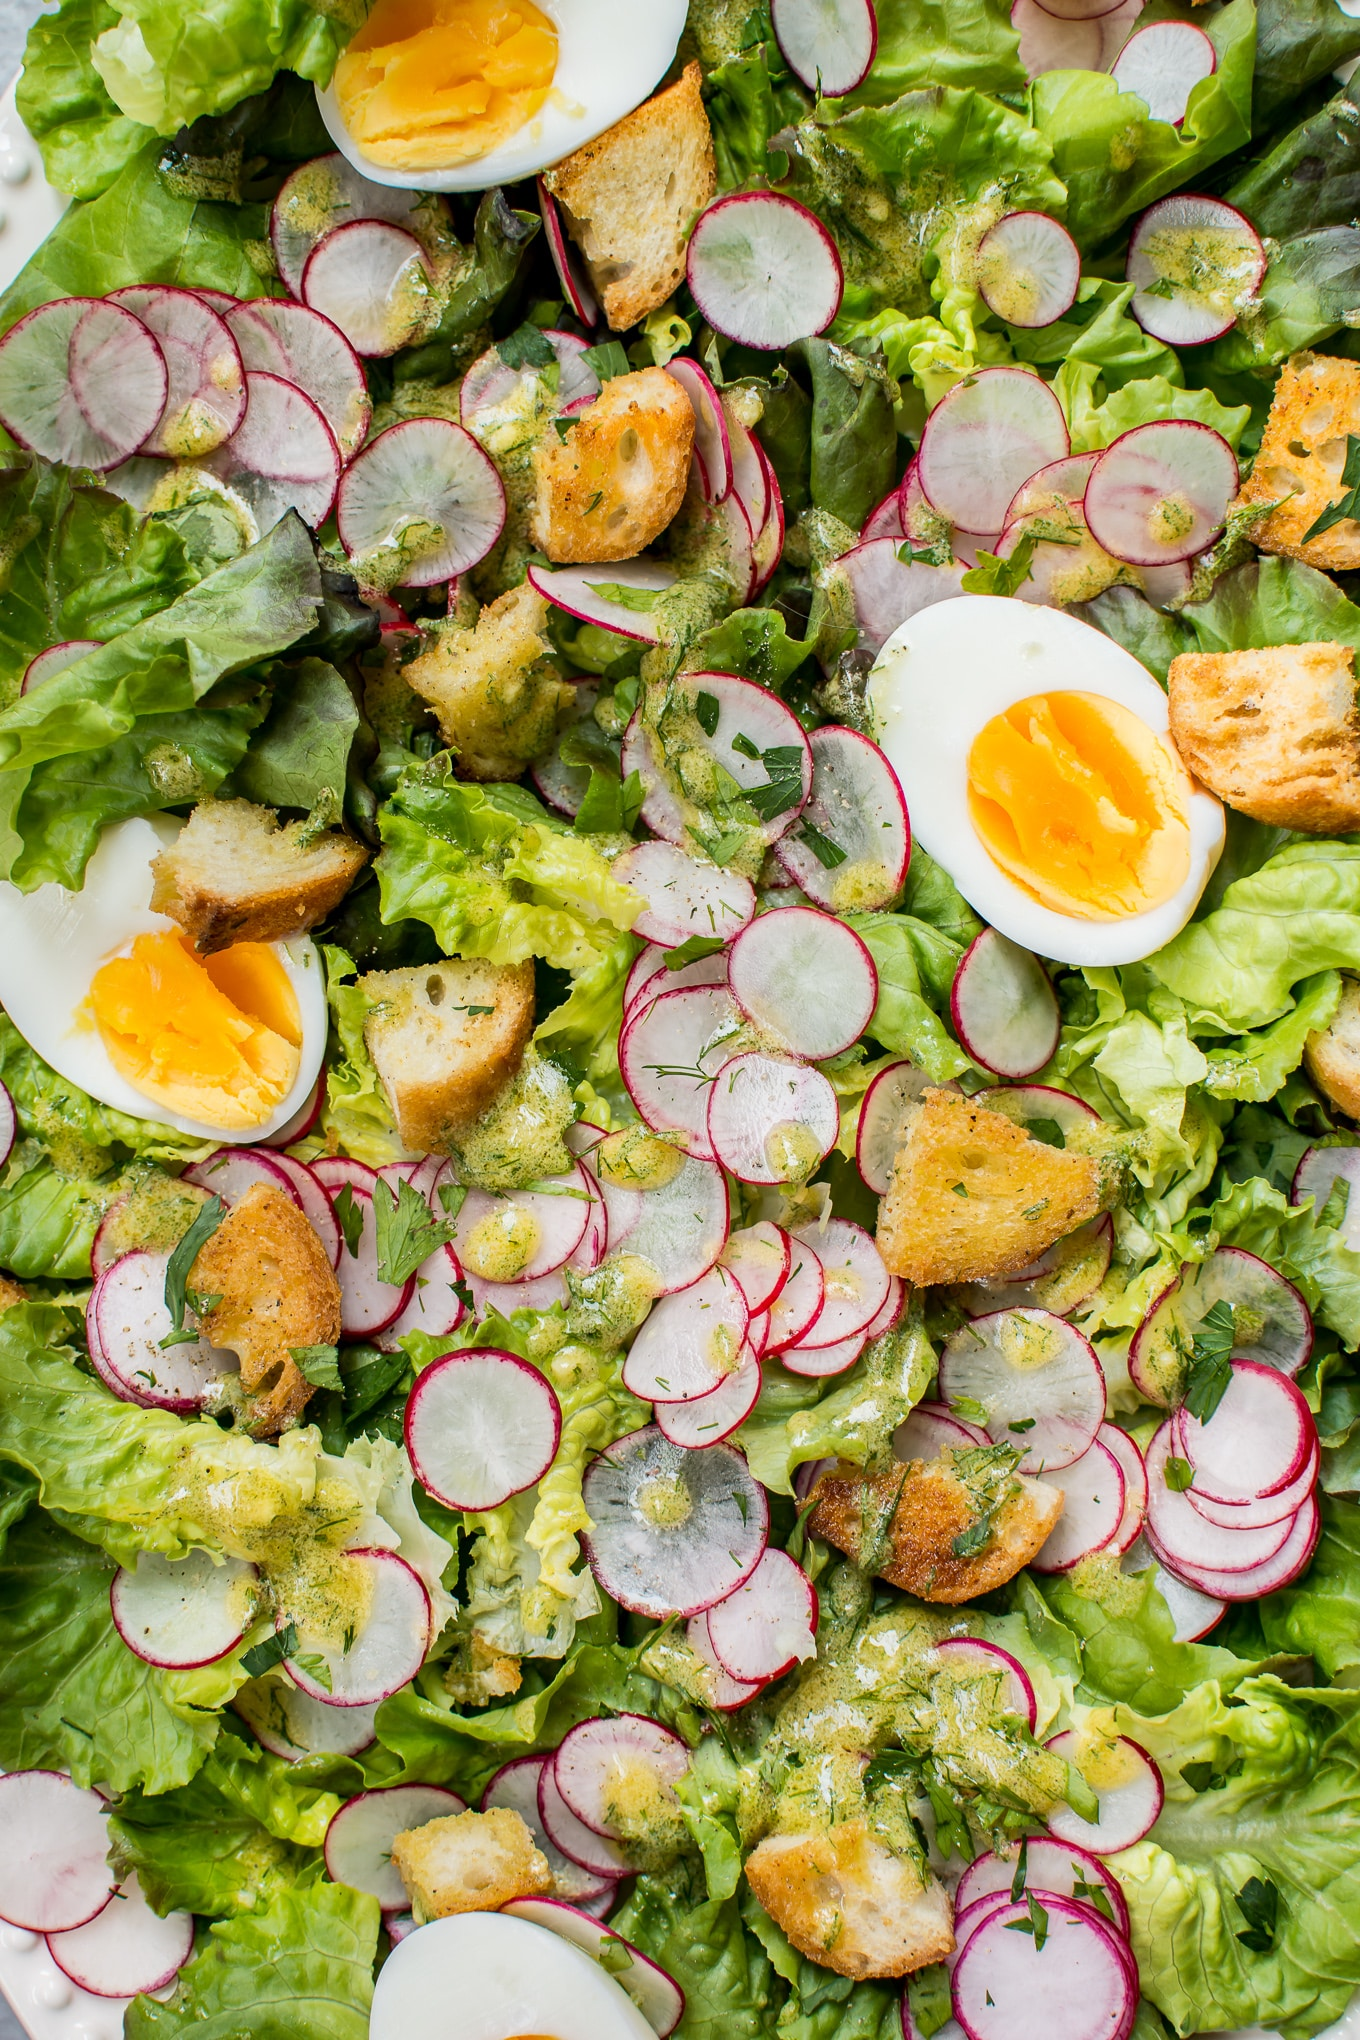 This Butter Leaf Lettuce Salad With A Lemon Dill Dressing Garlic Croutons Hard